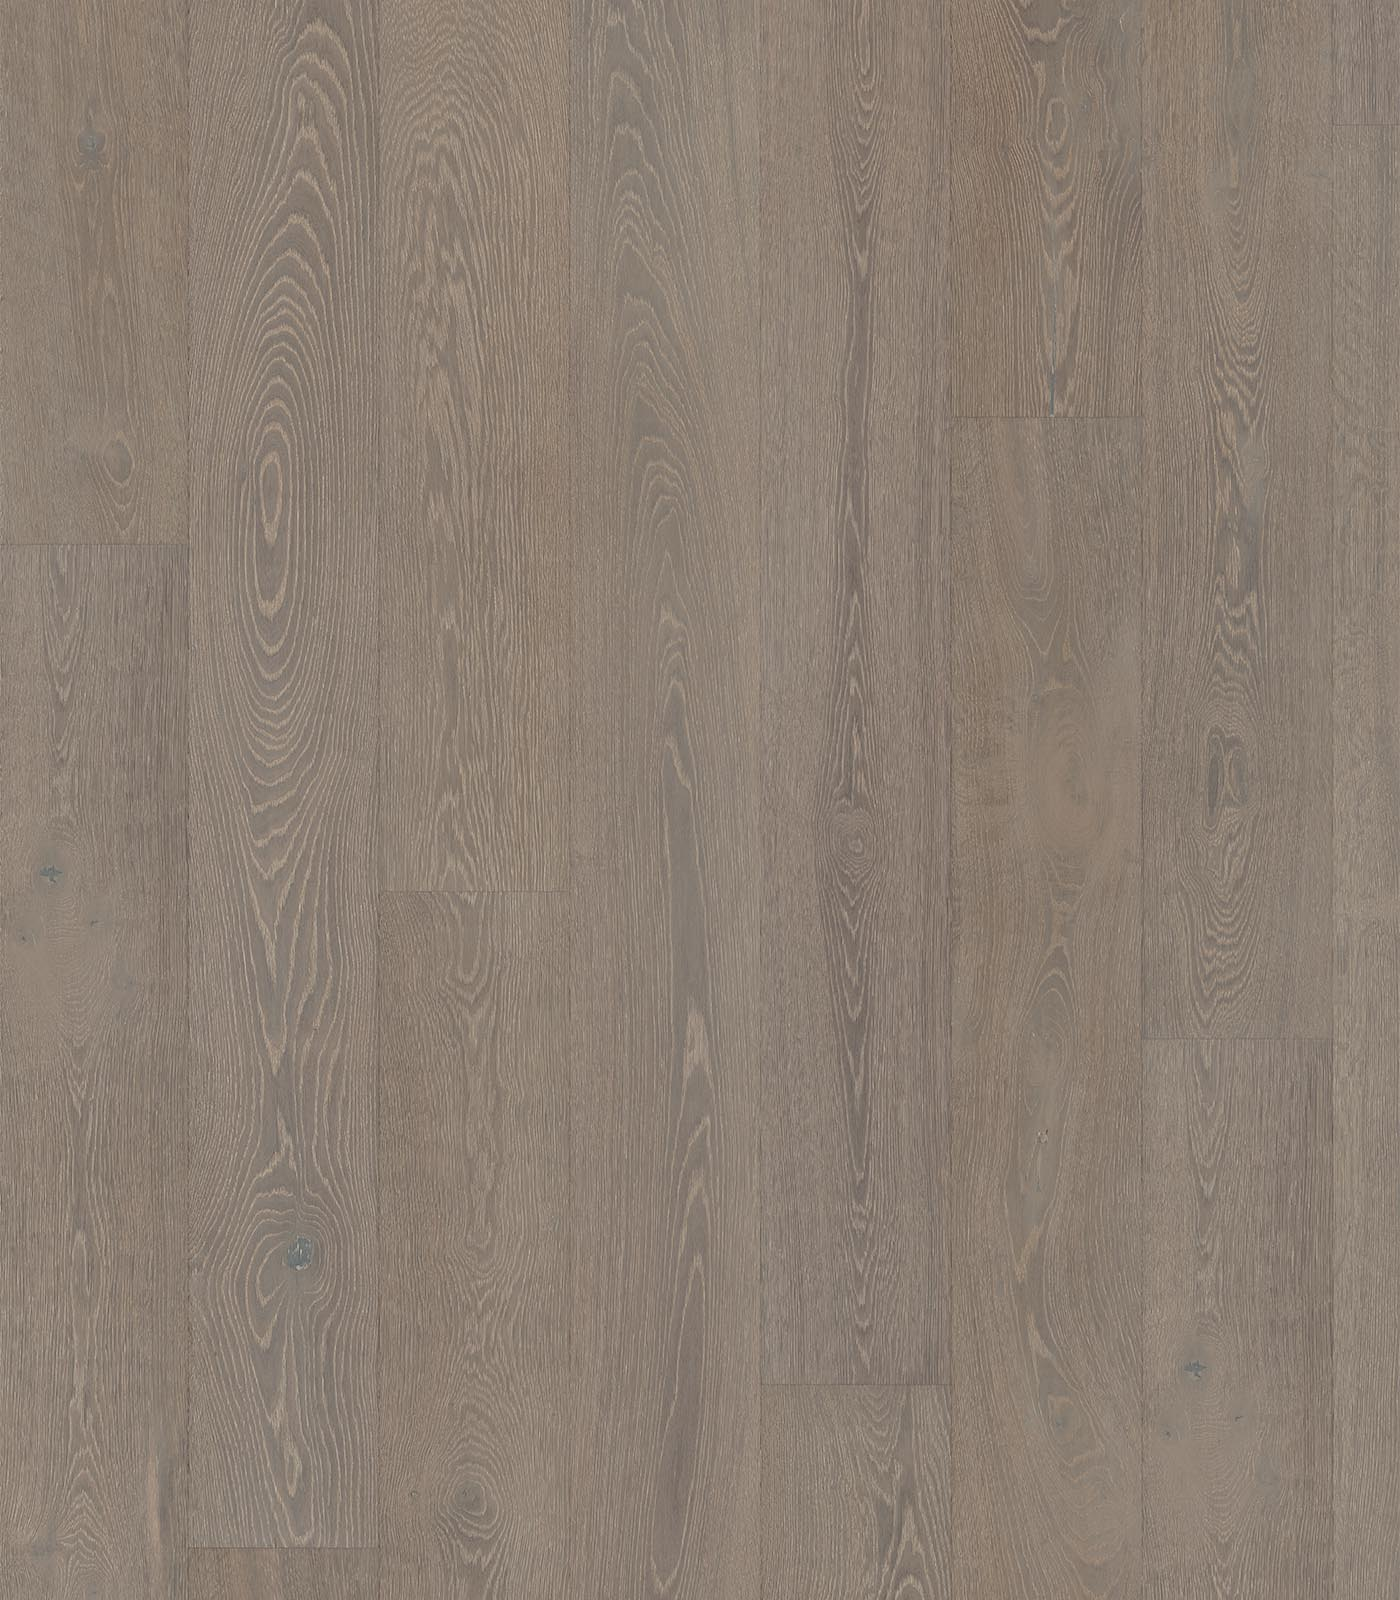 Uluwatu-Lifestyle Collection-European Oak floors-flat